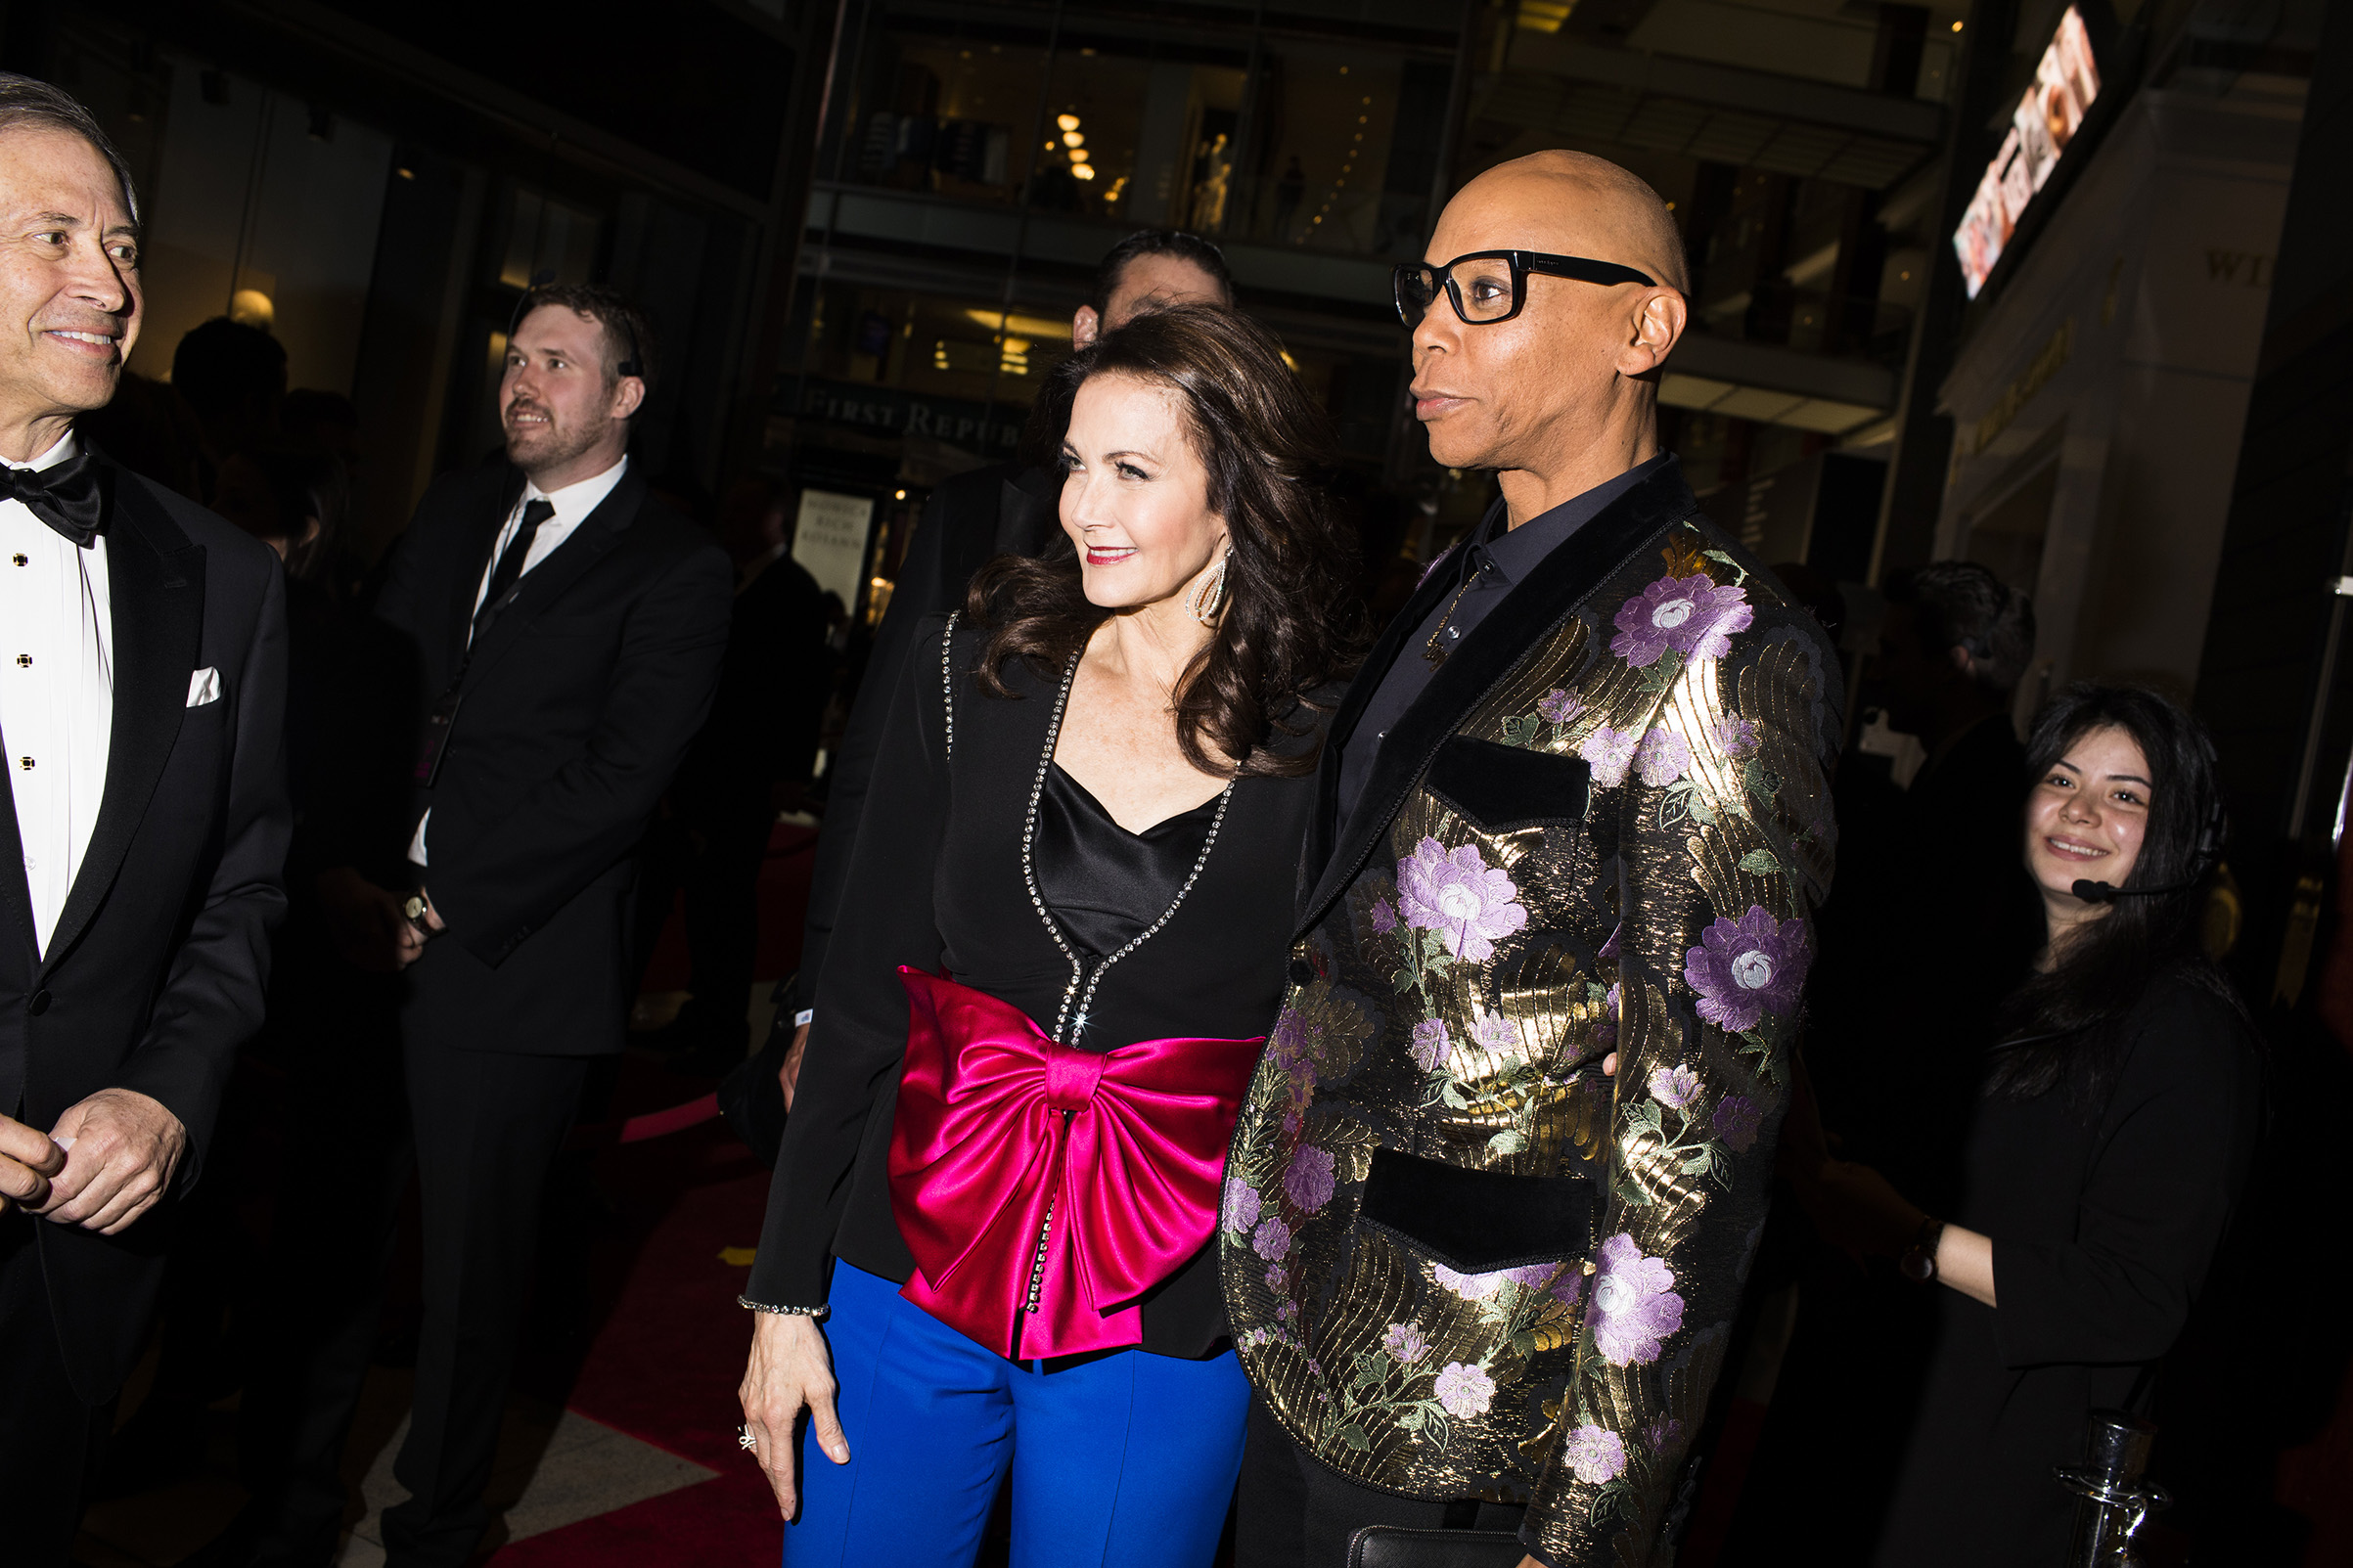 Lynda Carter and RuPaul at the Time 100 Gala at Jazz at Lincoln Center on April 24, 2018 in New York City.